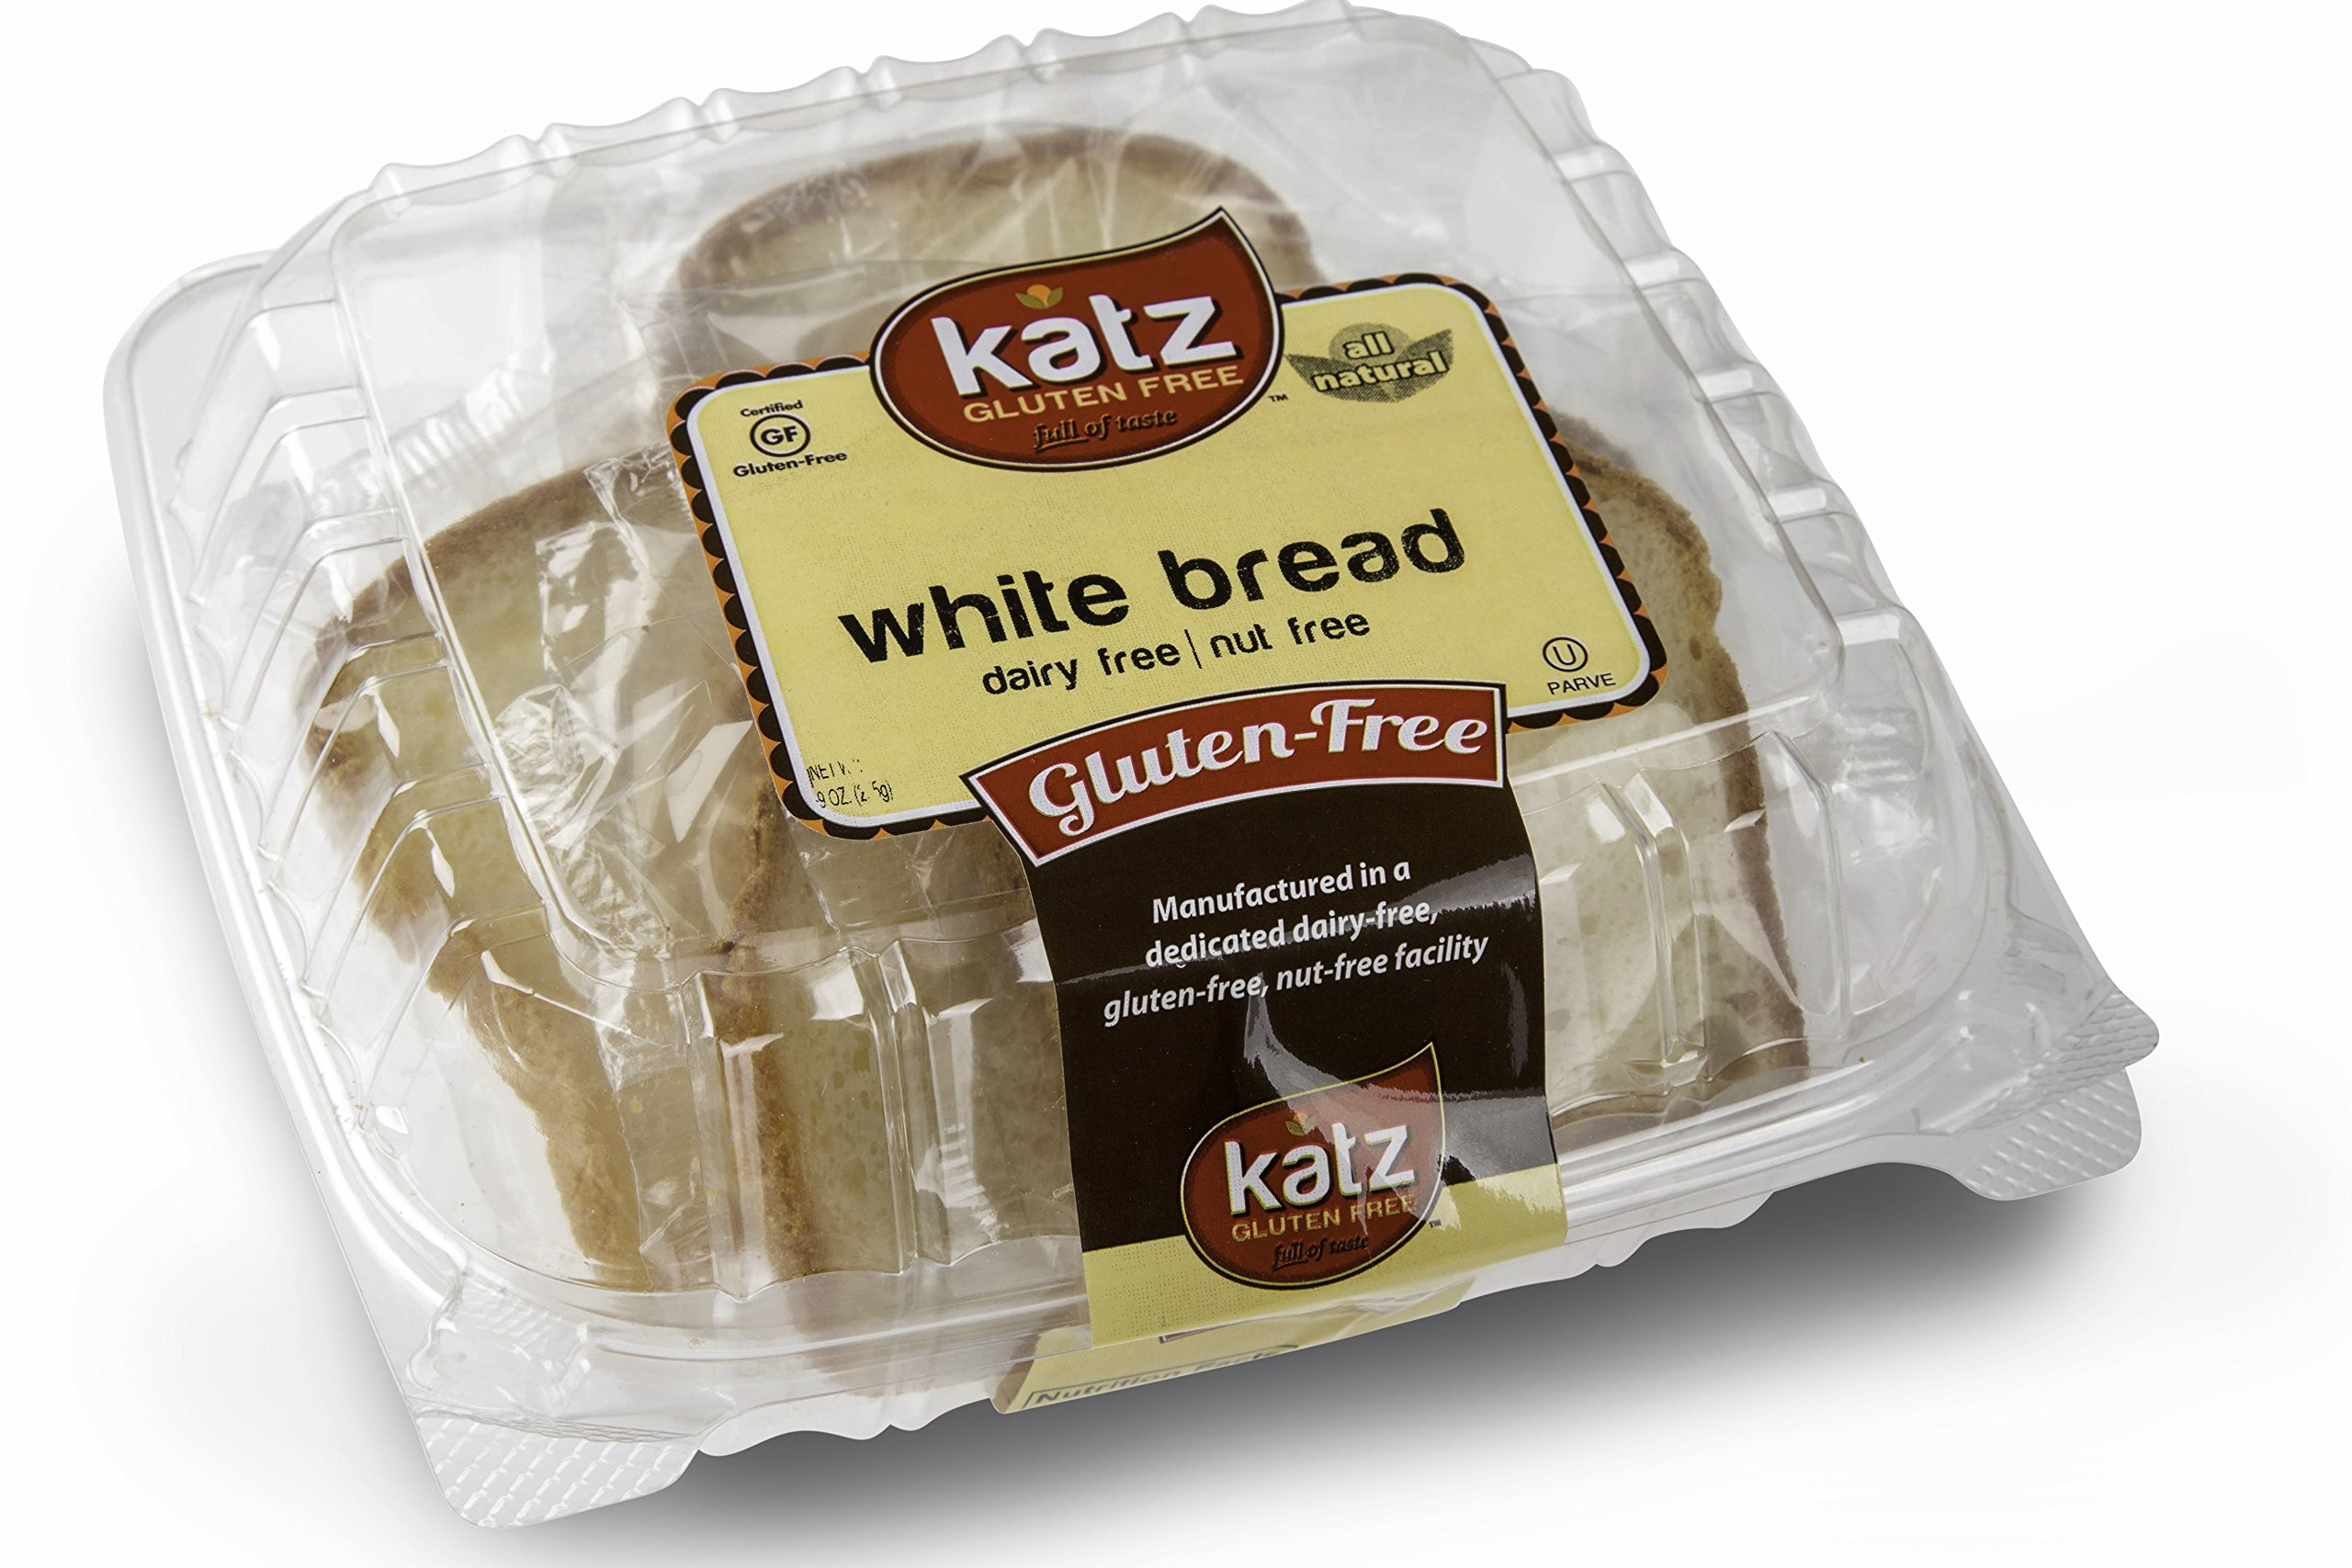 Katz Gluten Free Individually Wrapped GRAB 'N' GO White Bread, 9 Ounce, Certified Gluten Free - Kosher - Dairy Free & Nut free (Pack Of 6)